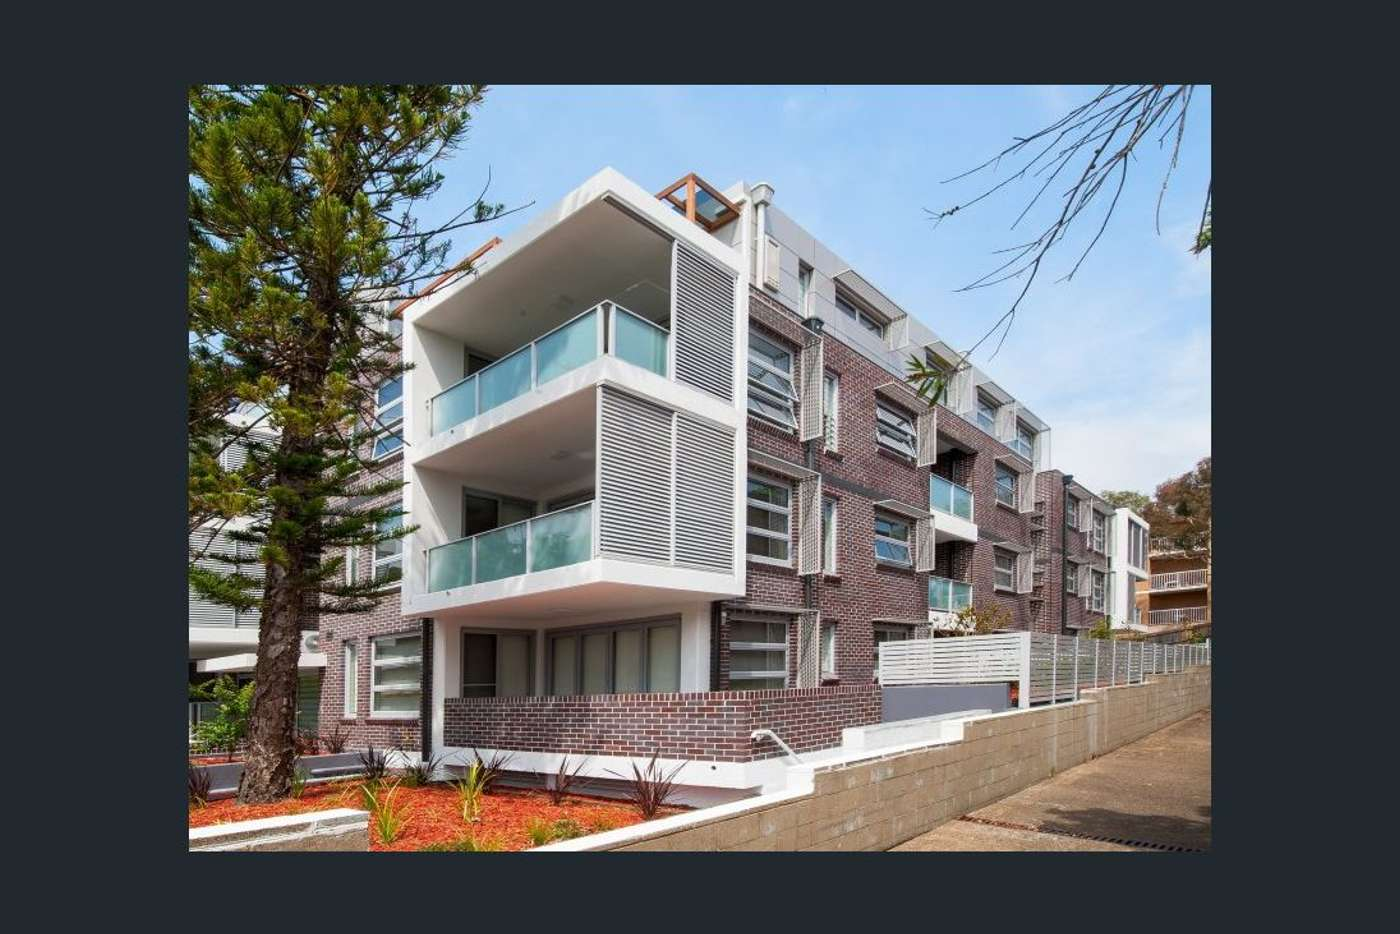 Main view of Homely apartment listing, 7/66-70 Boronia St, Kensington NSW 2033